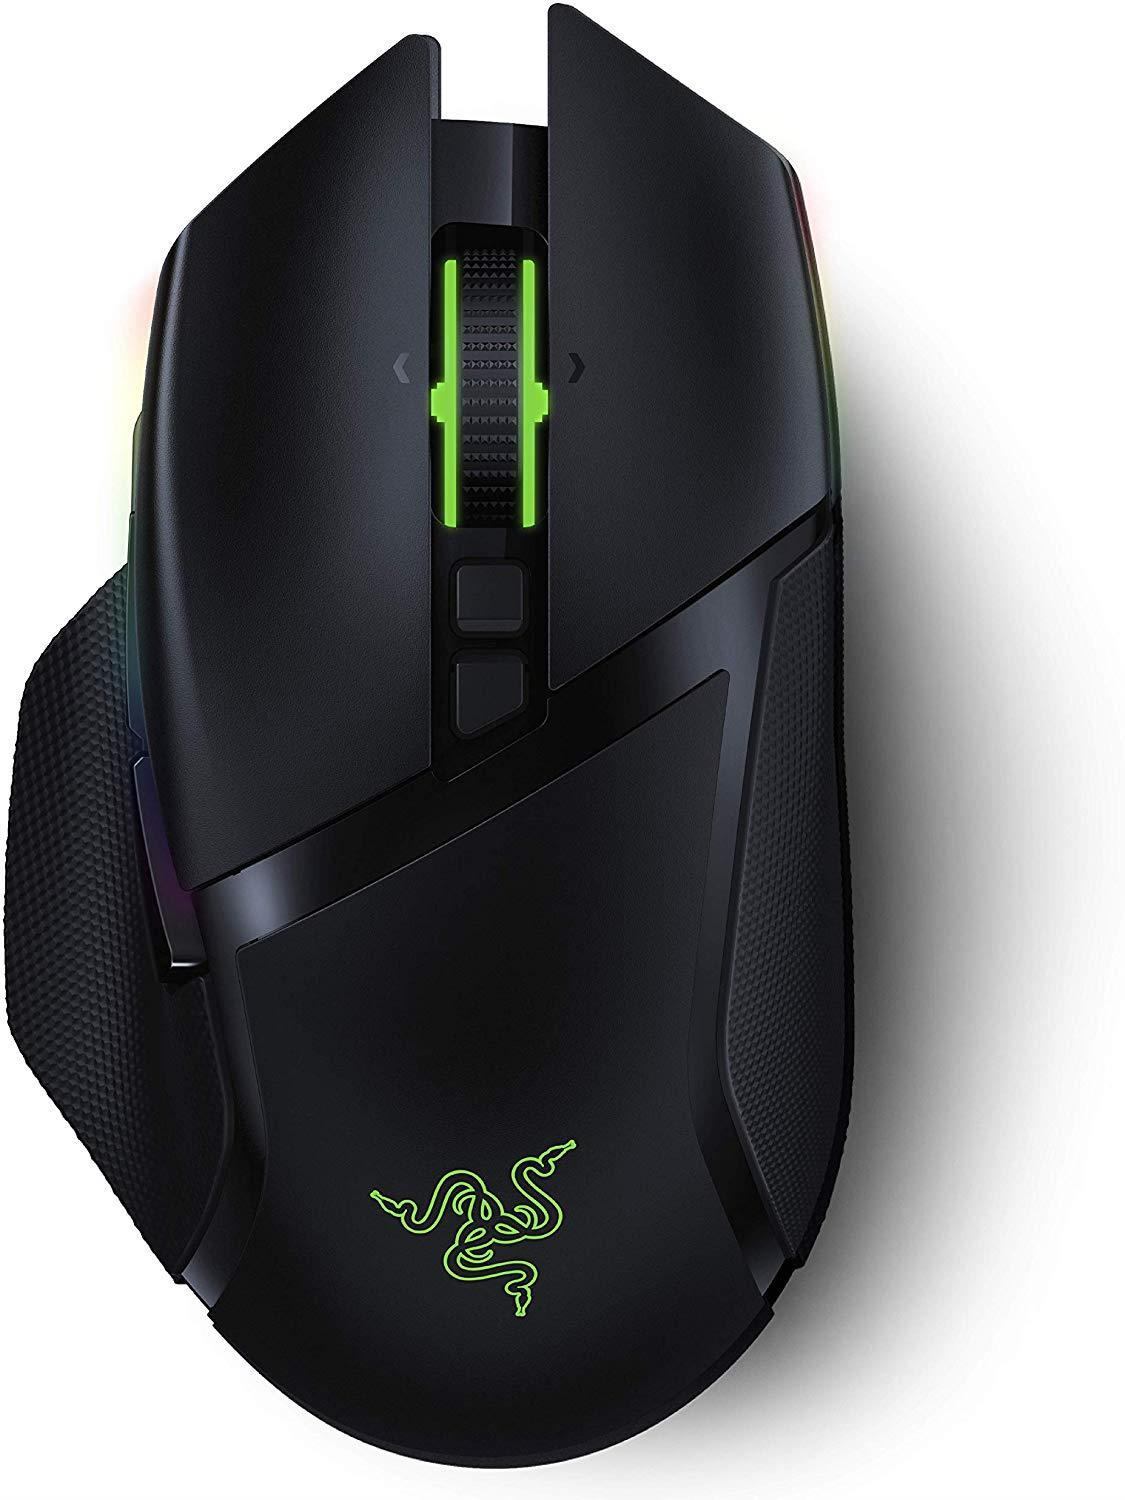 Razer Basilisk Ultimate - Best Gaming Wireless Mouse